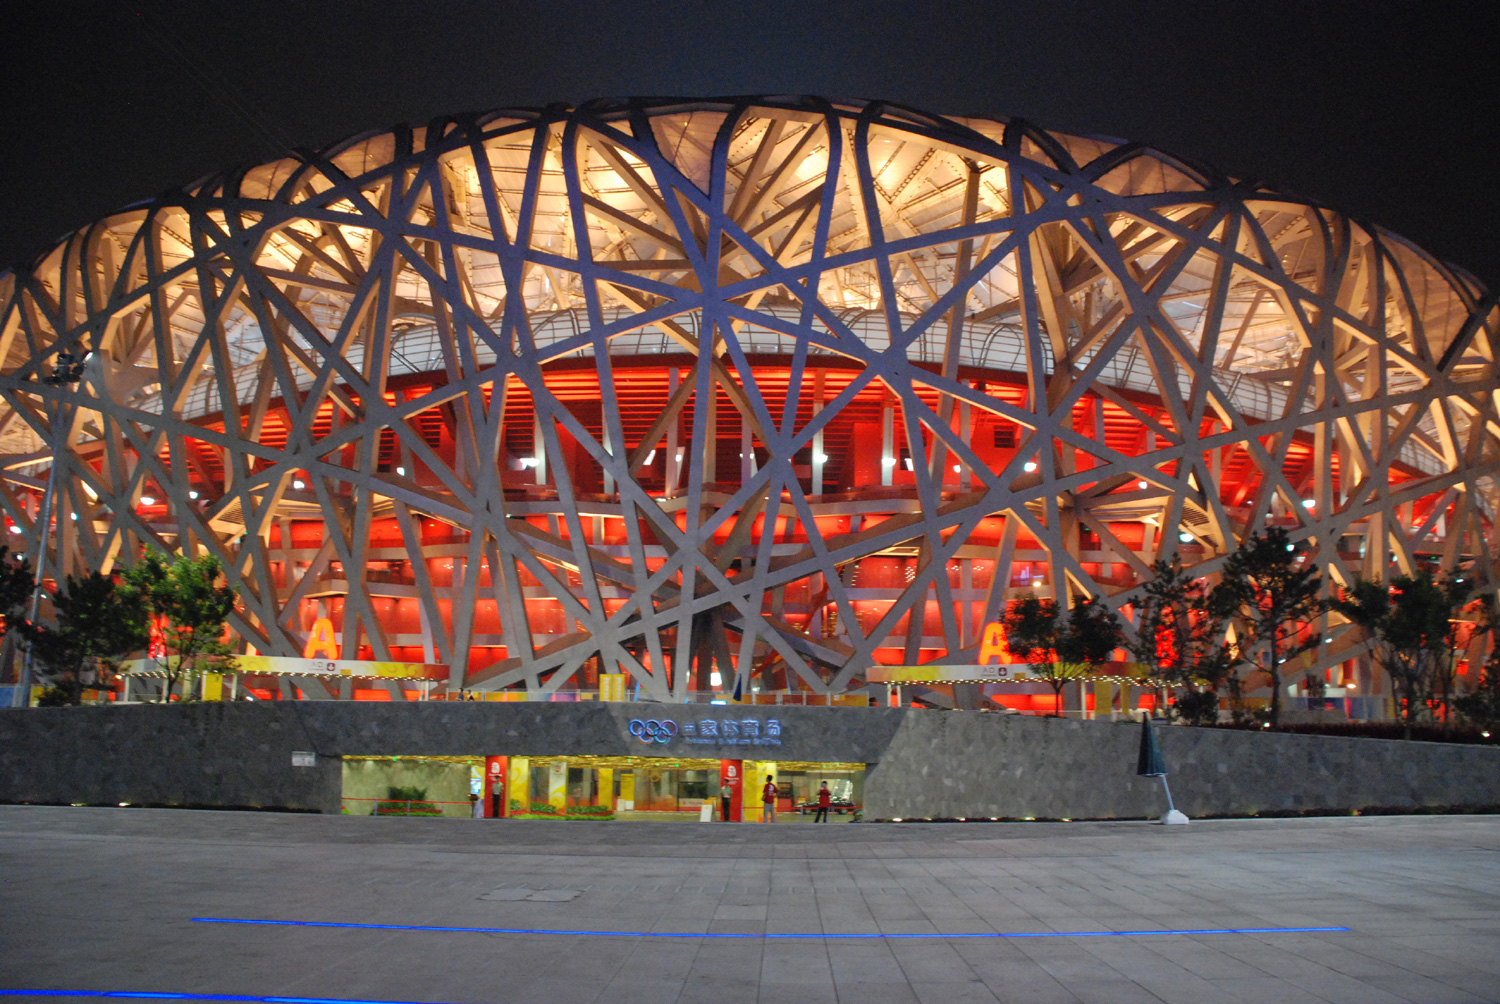 Beijing National Stadium on August 16th, 2008 was heralded as an architectural marvel of the 2008 summer games. By Jmex60 (Own work) [GFDL or CC BY-SA 3.0], via Wikimedia Commons